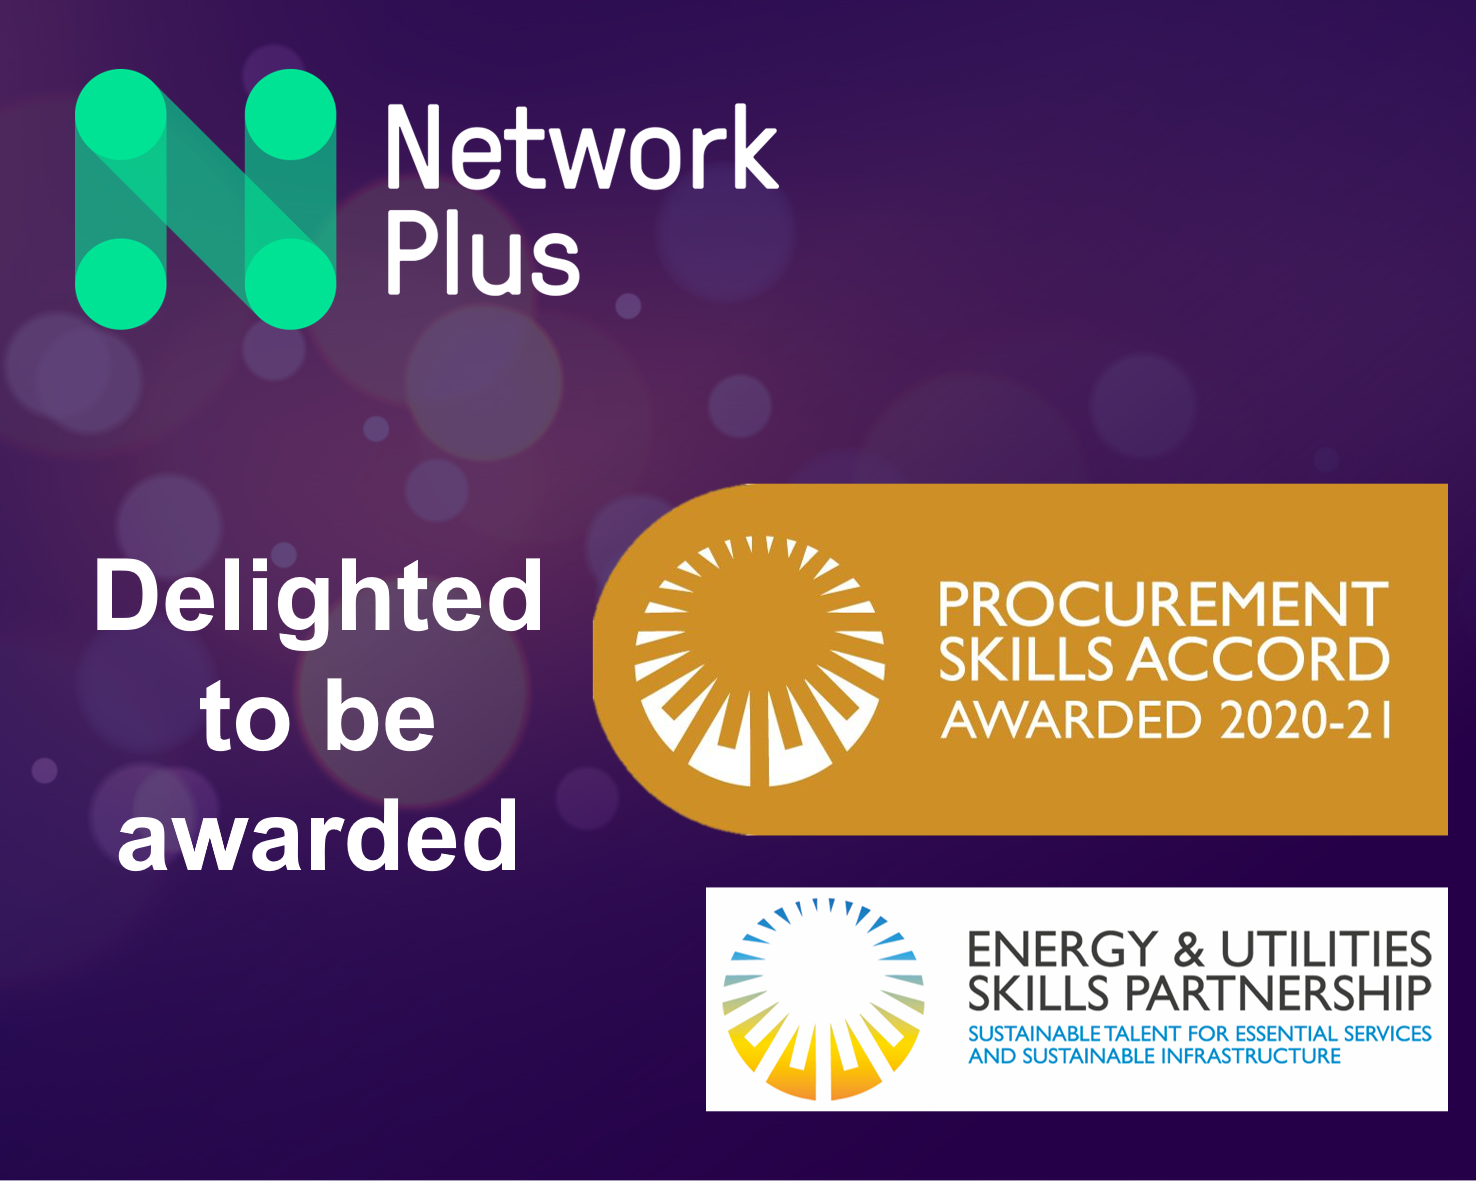 Network Plus wins at the Procurement Skills Accord Awards 2021